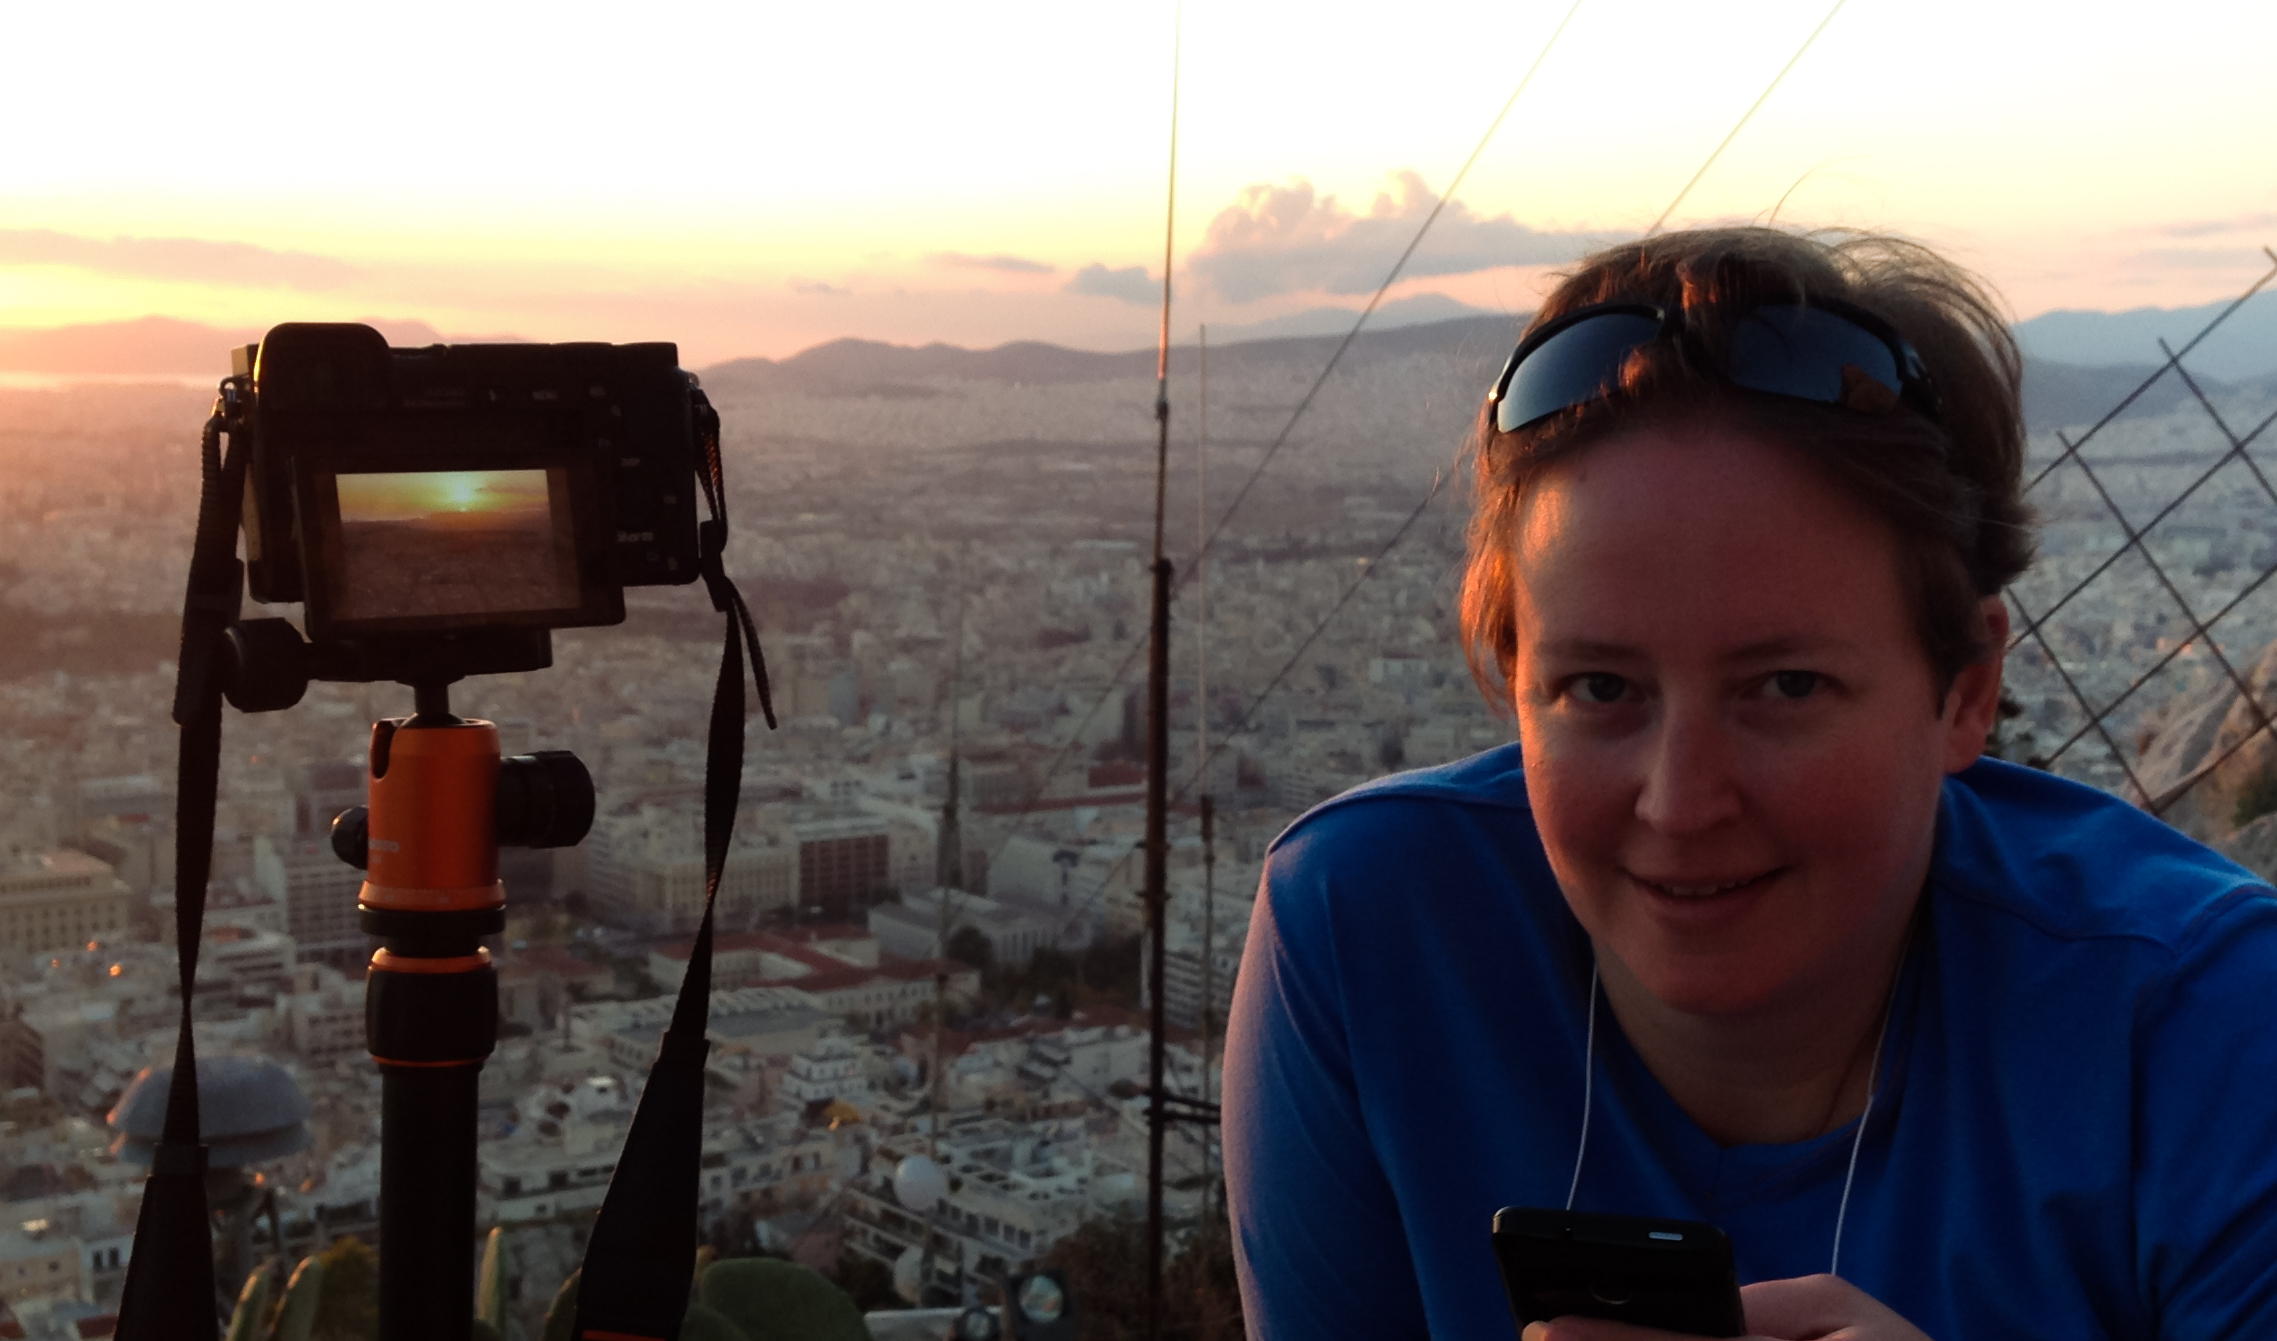 This is me capturing a sunset in Greece. I love using my phone as a remote shutter release when I'm using the tripod.